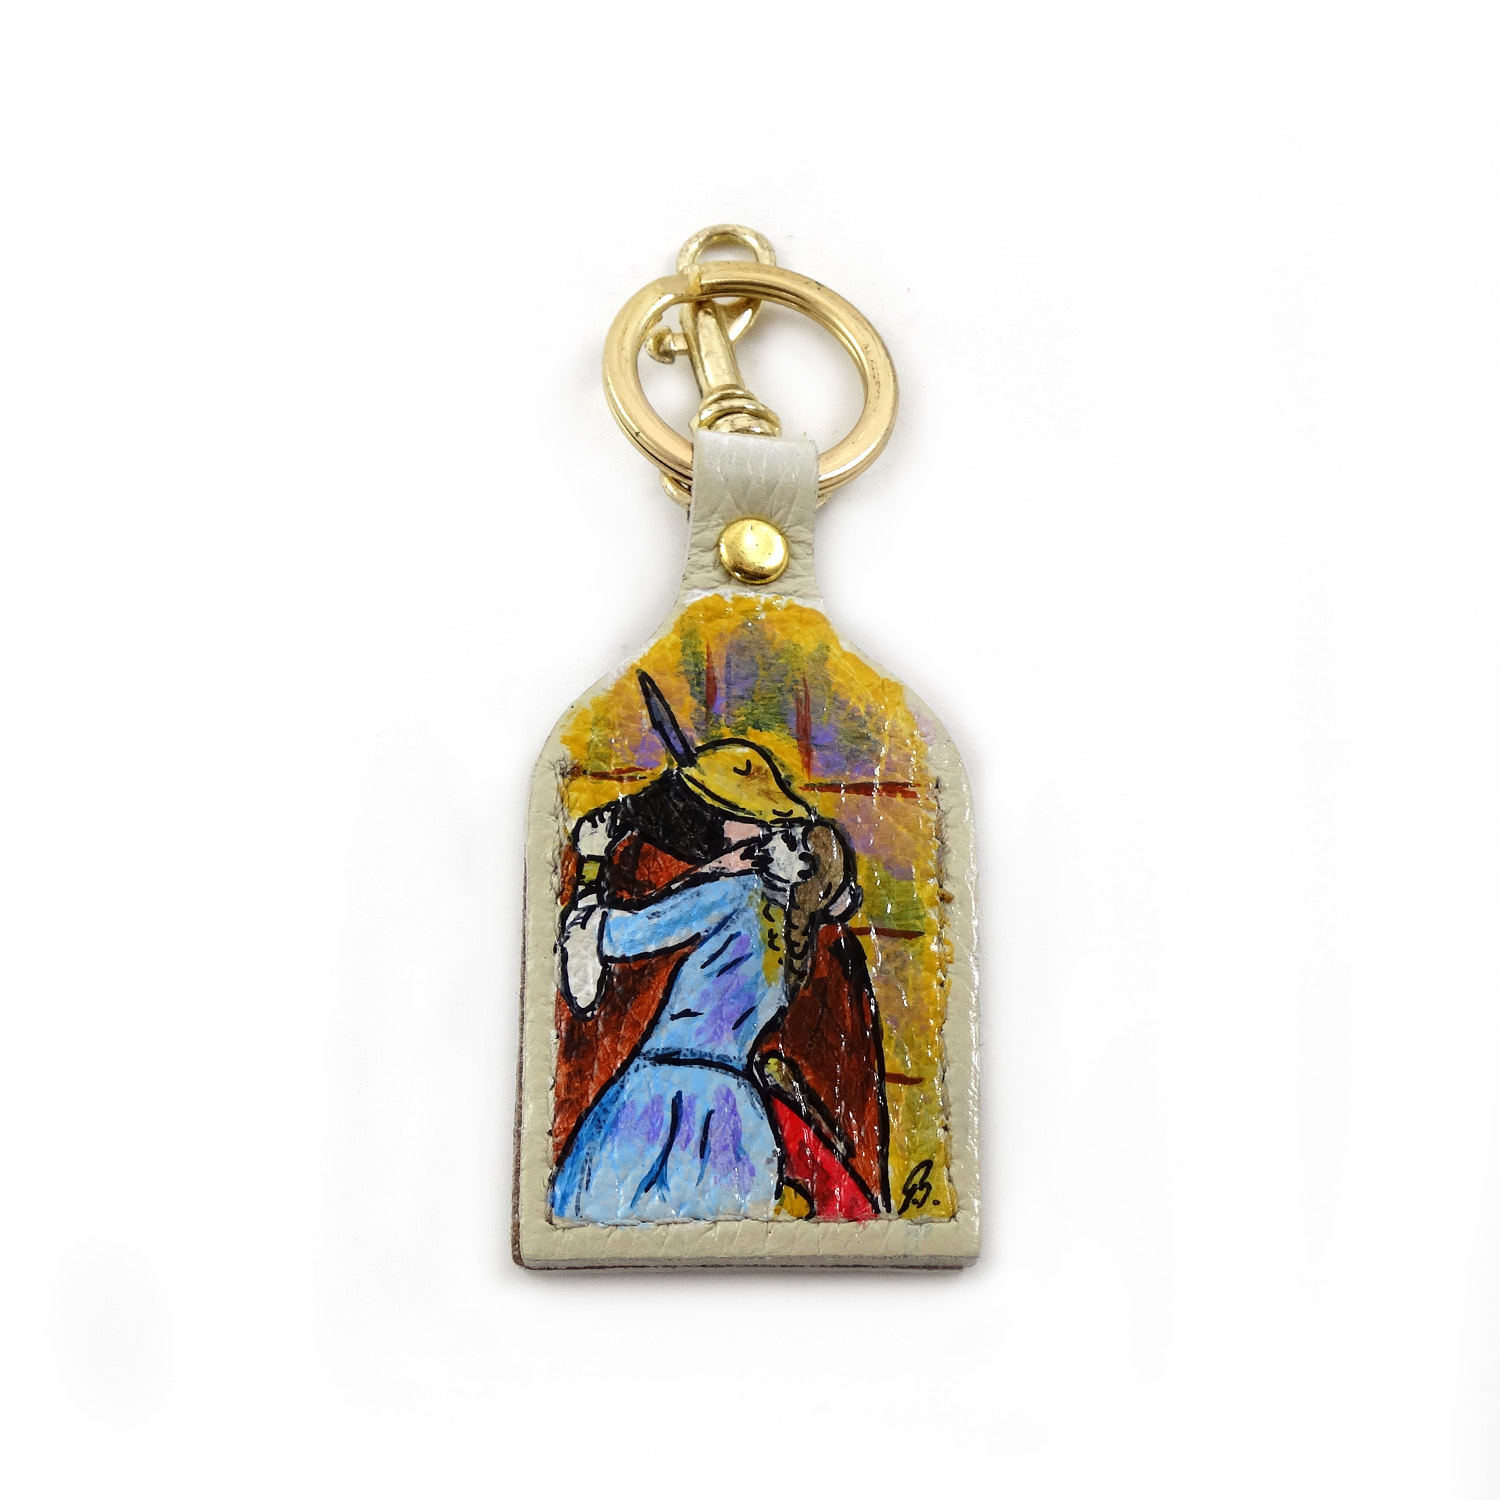 Hand painted keychain - The Kiss by Hayez